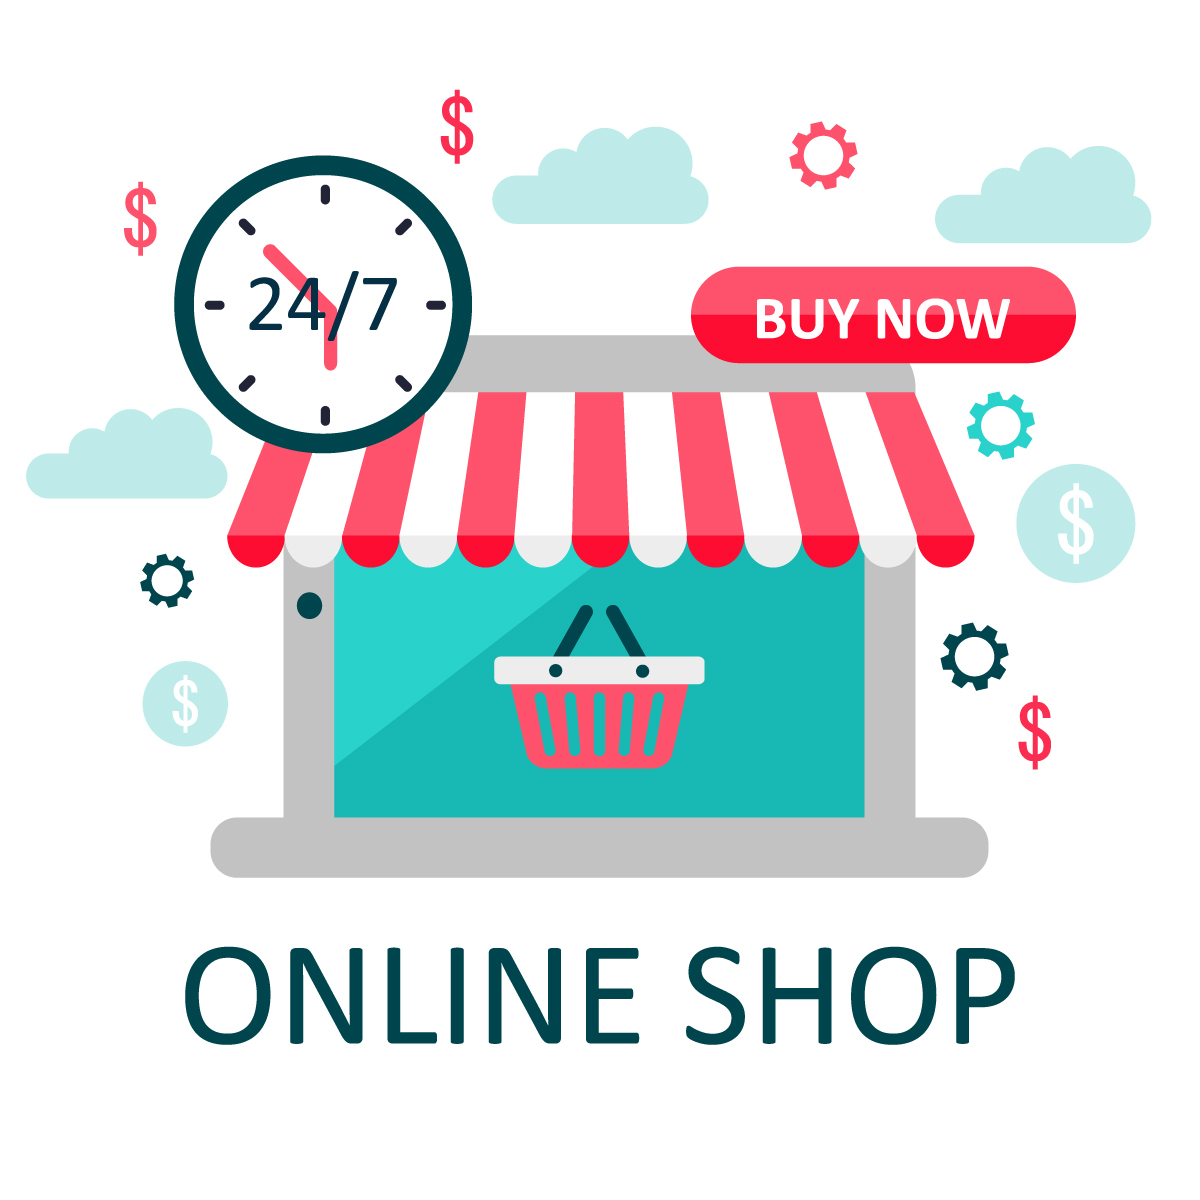 How to make your e-commerce business successful